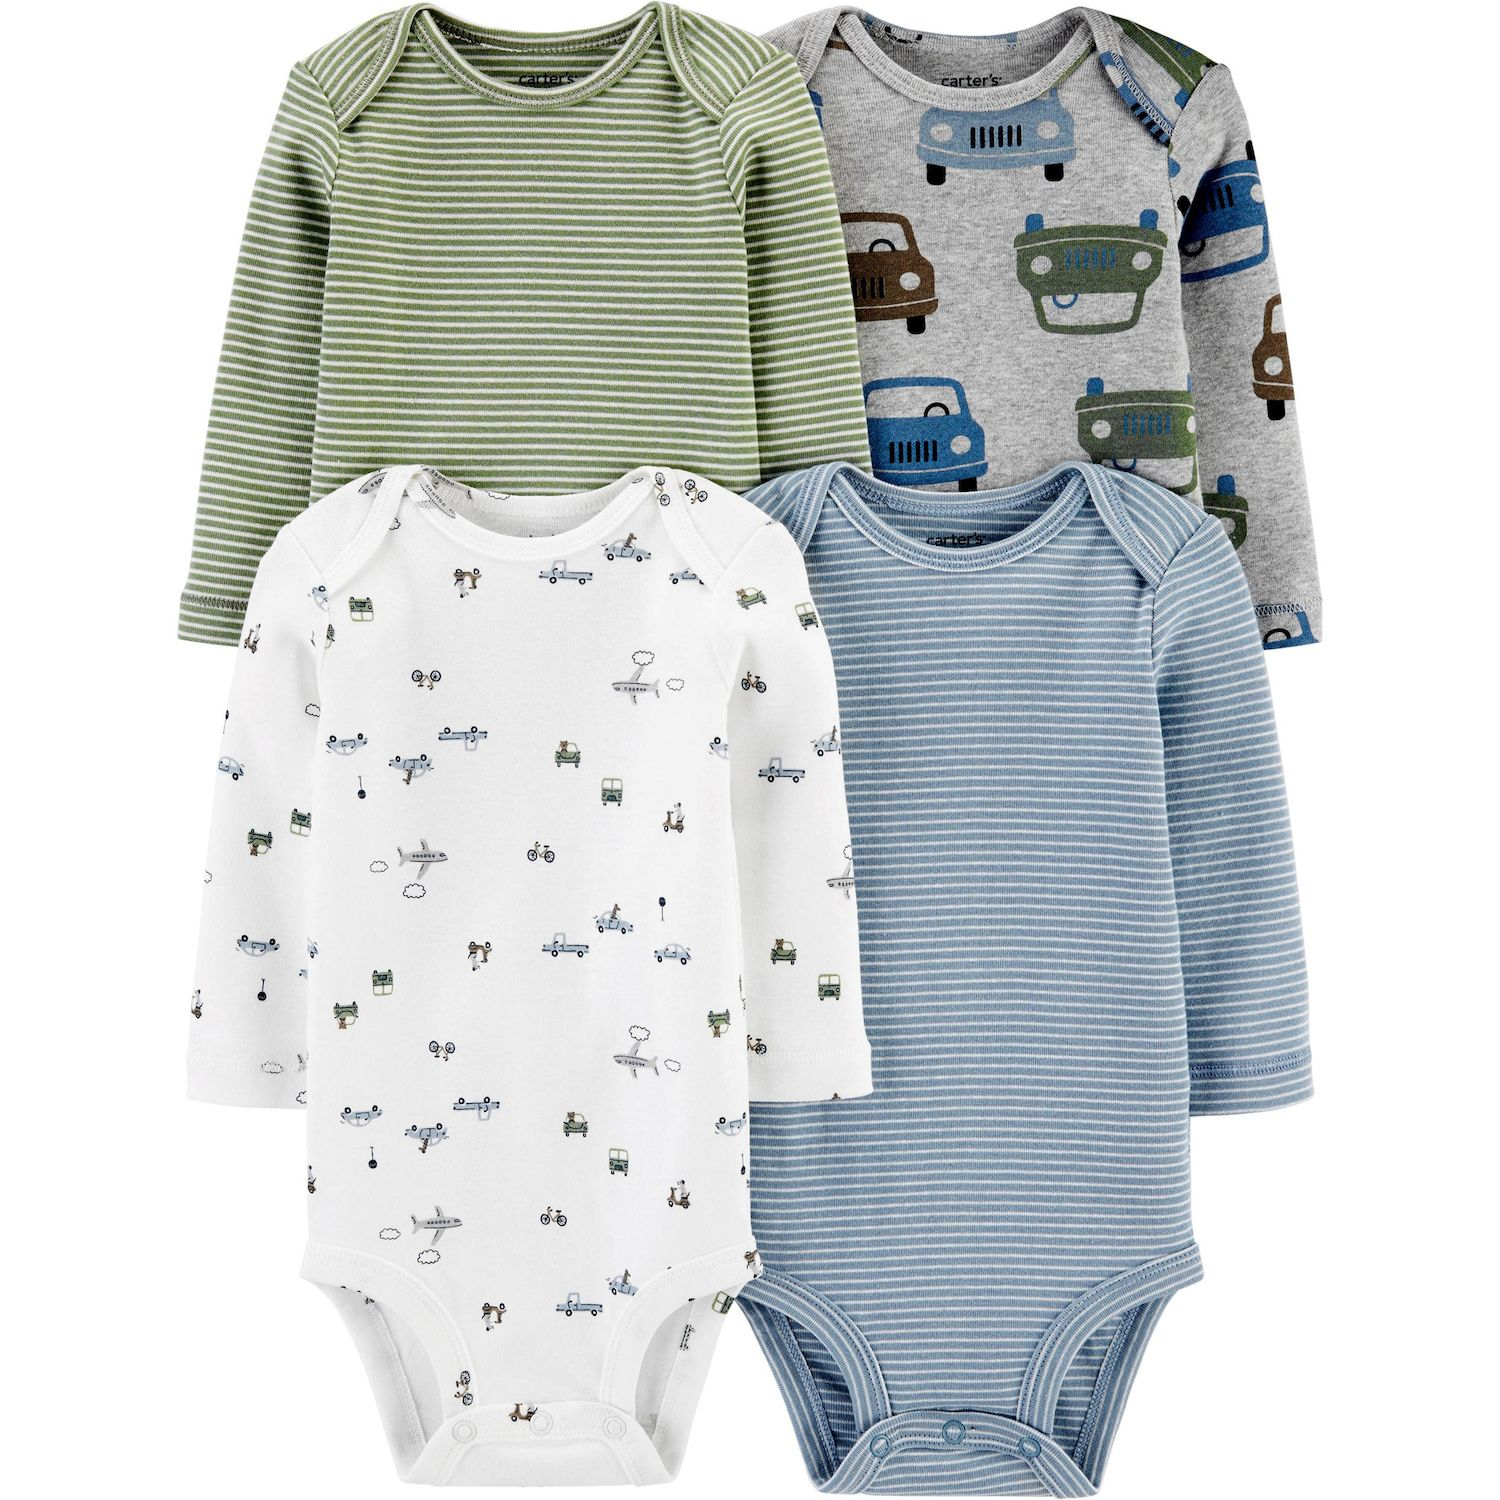 12M  $26 NEW CARTER/'S BABY BOY 4 PACK LONG SLEEVE BODYSUITS 9M